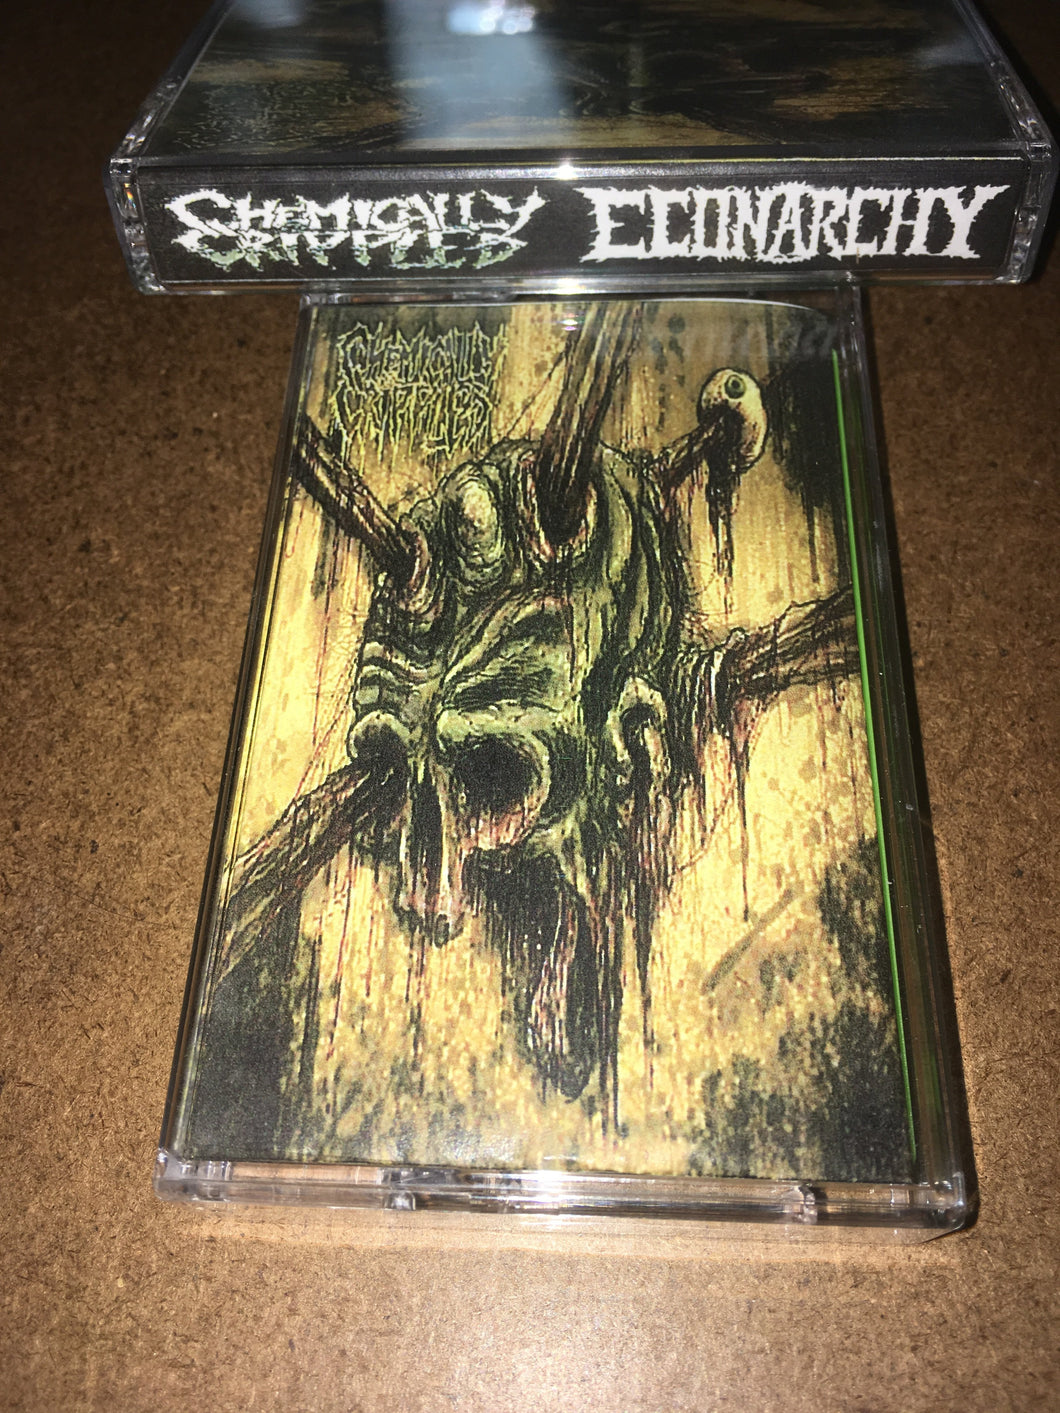 CHEMICALLY CRIPPLED / ECONARCHY split Tape